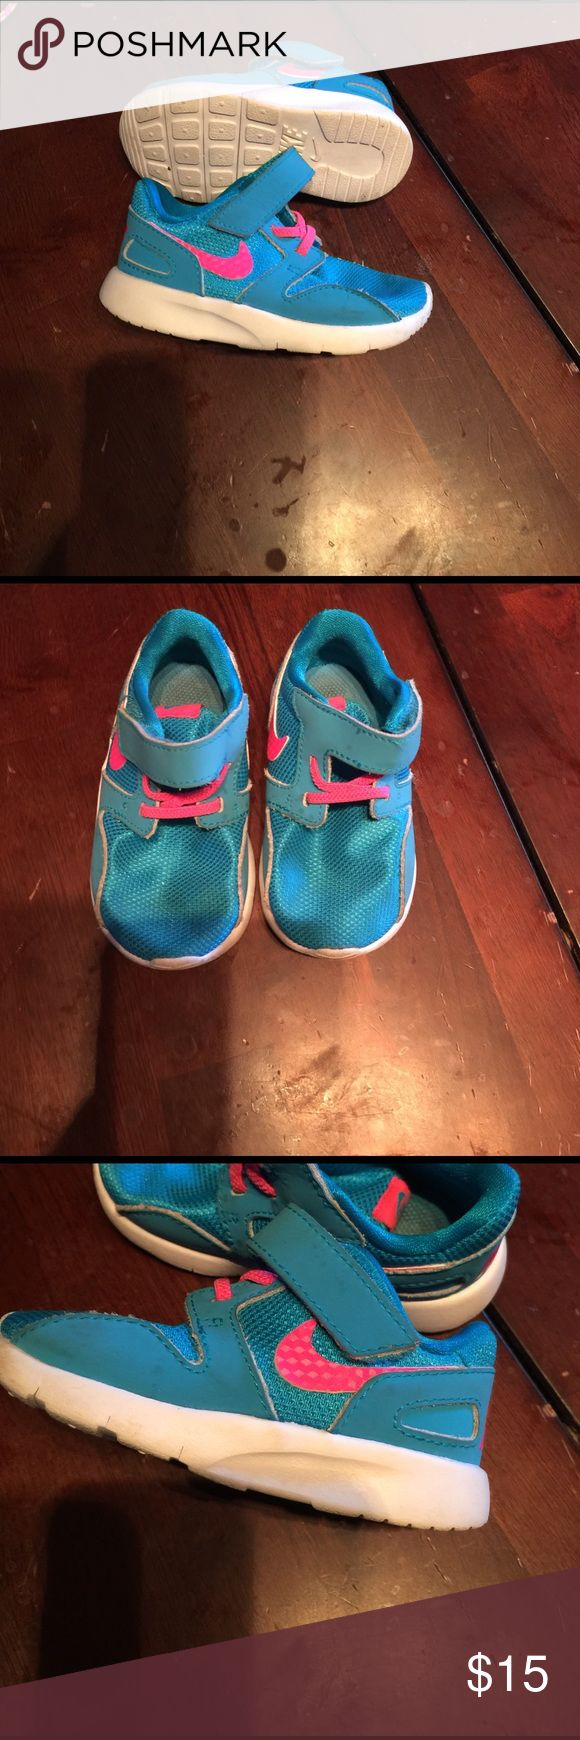 Baby Nike shoes Blue,pink and white baby Nike tennis shoes. Worn a few times,still in great condition!! Make an offer! Nike Shoes Sneakers